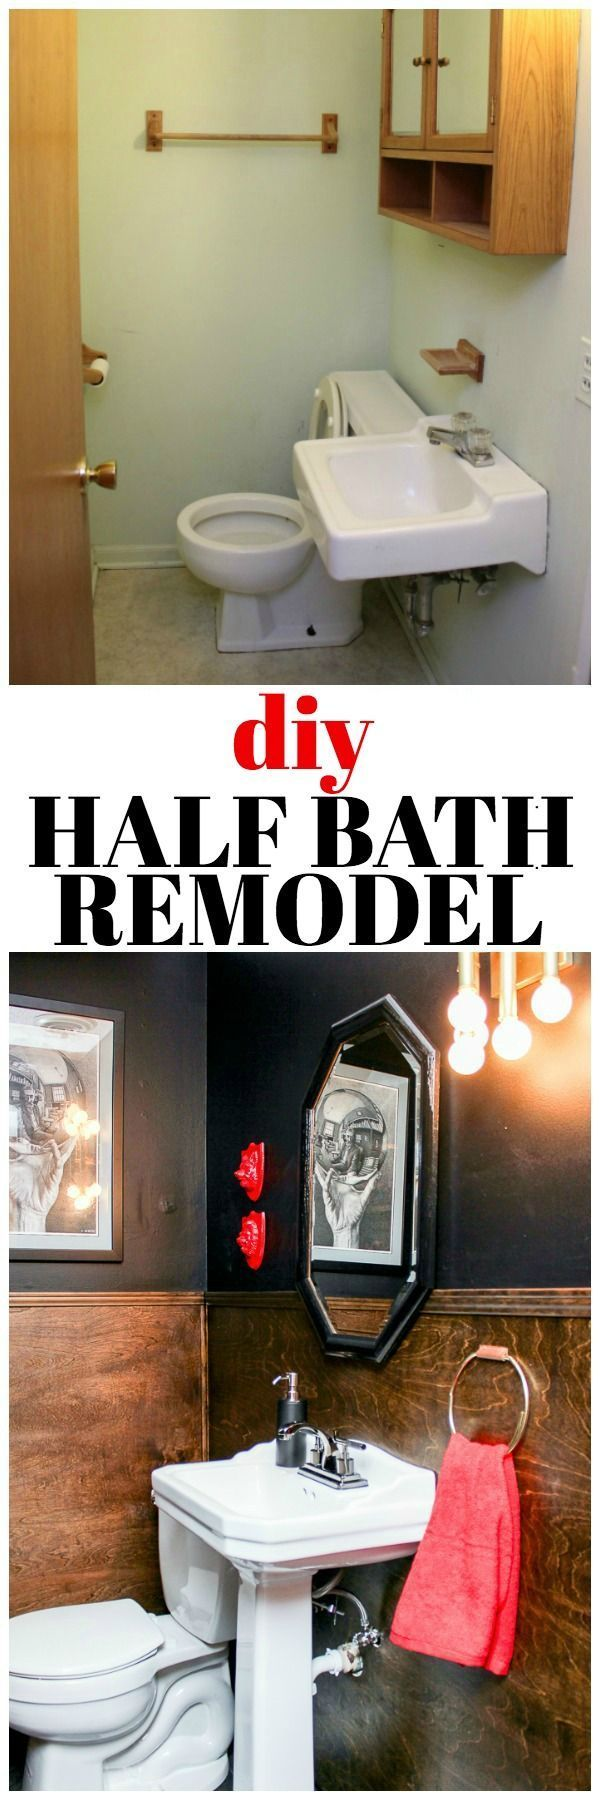 Diy Half Bath Remodel Basement Man Cave